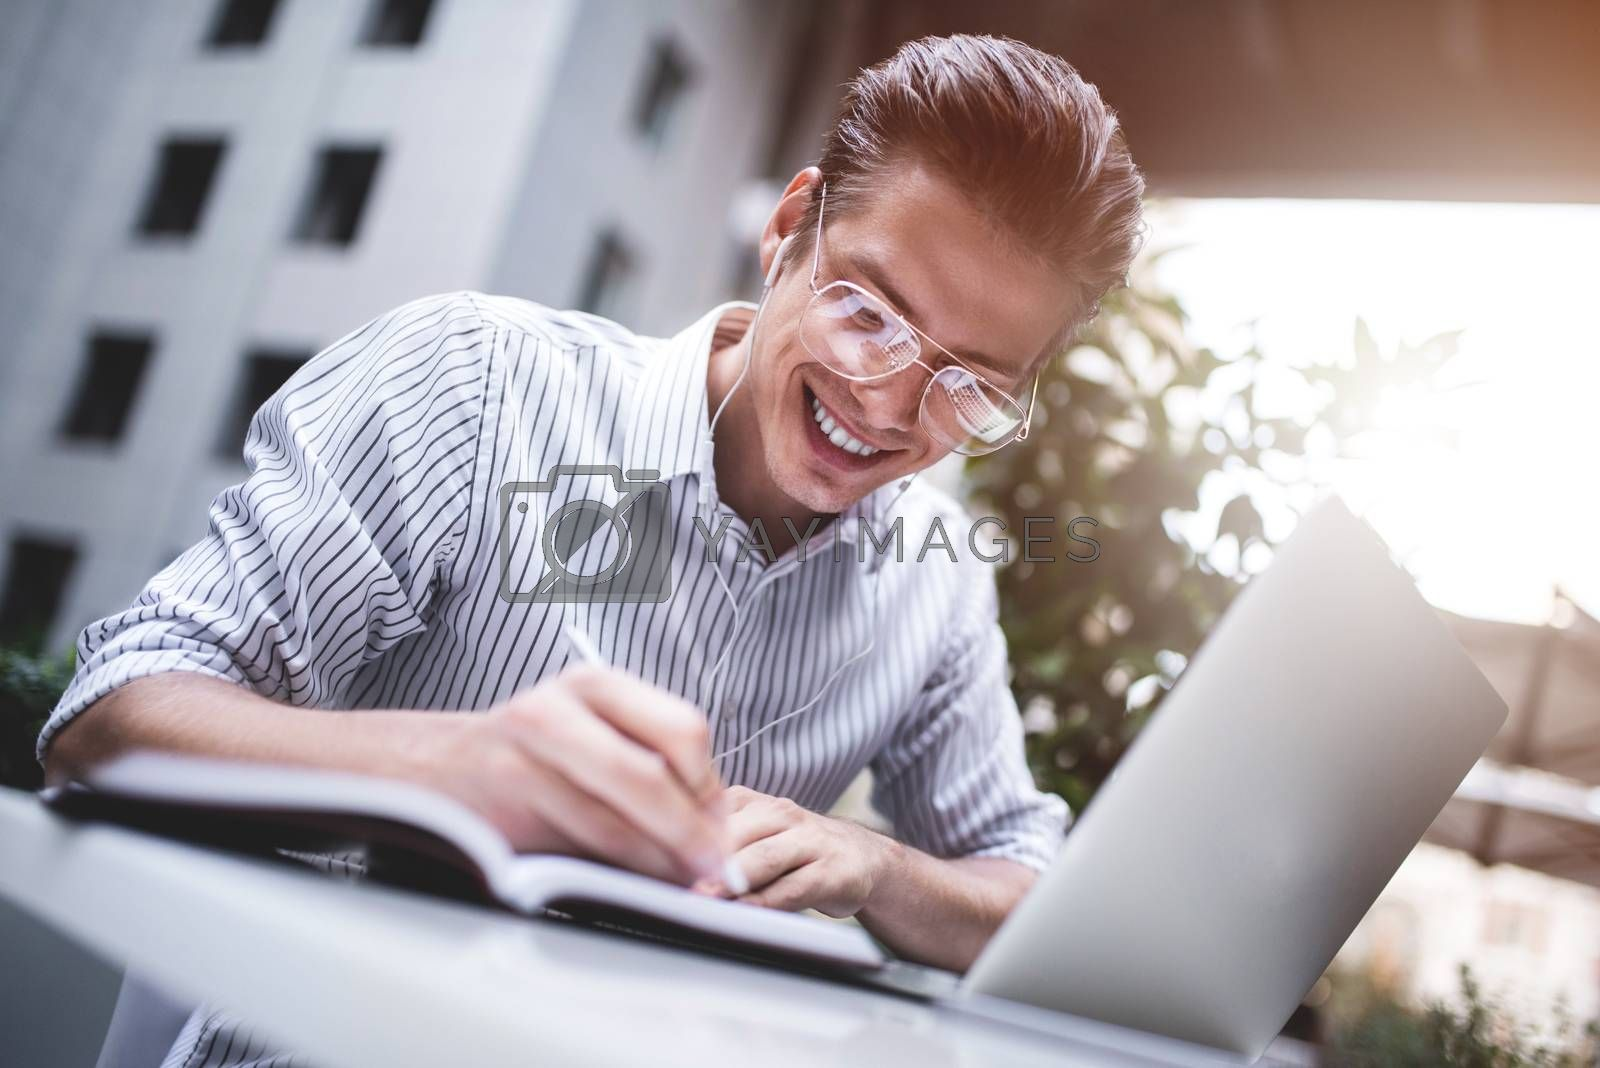 Royalty free image of Smart attitude. Positive handsome man using a laptop and sitting in the cafe while surfing the internet. Young blogger or journalist or designer working outdoor. by Nickstock